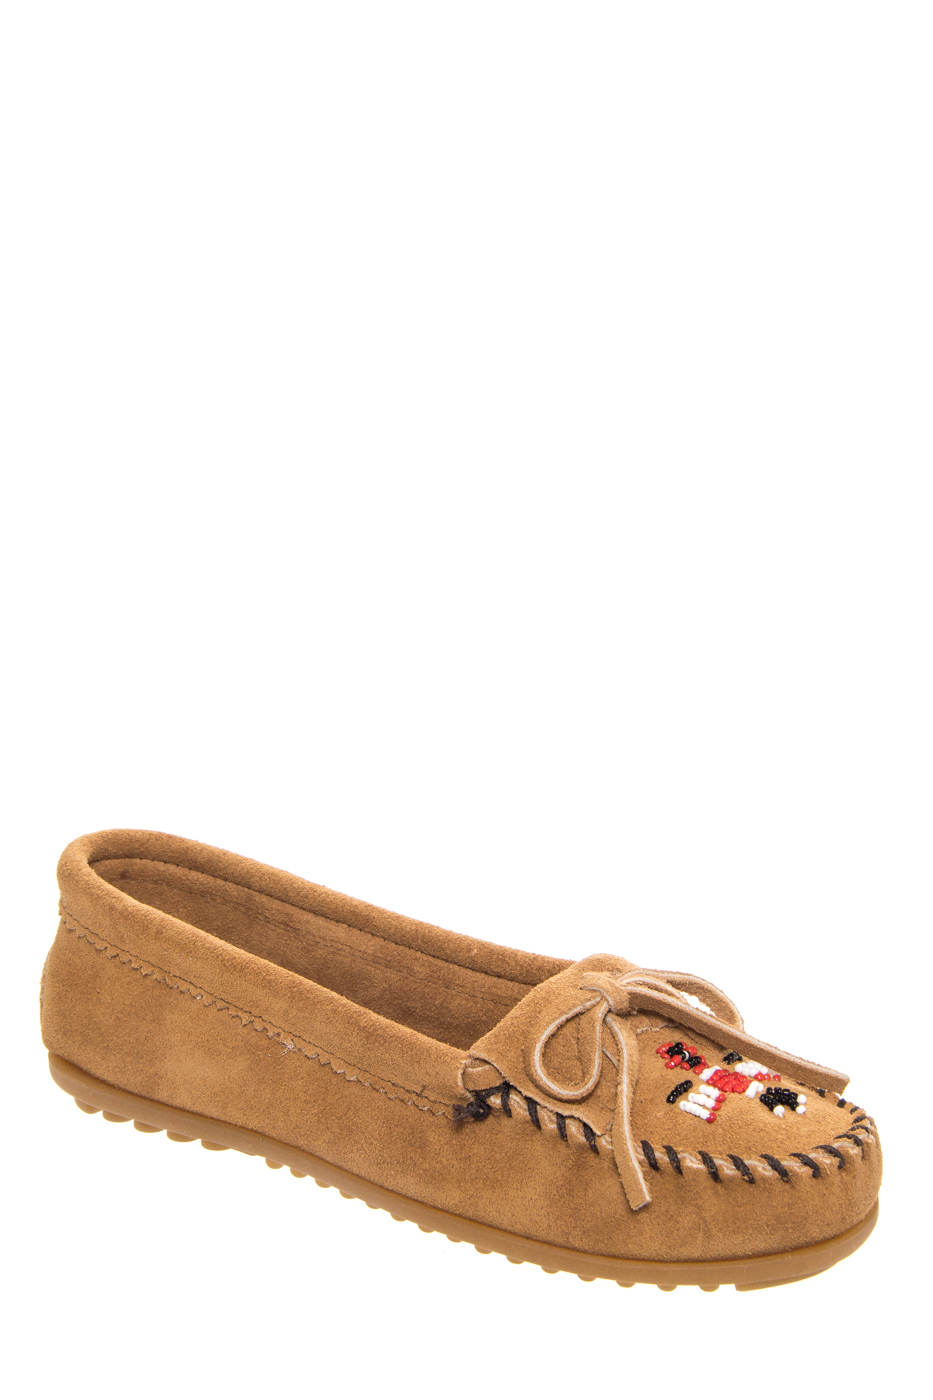 Click here to buy Minnetonka 607t Thunderbird II Moccasin Taupe.